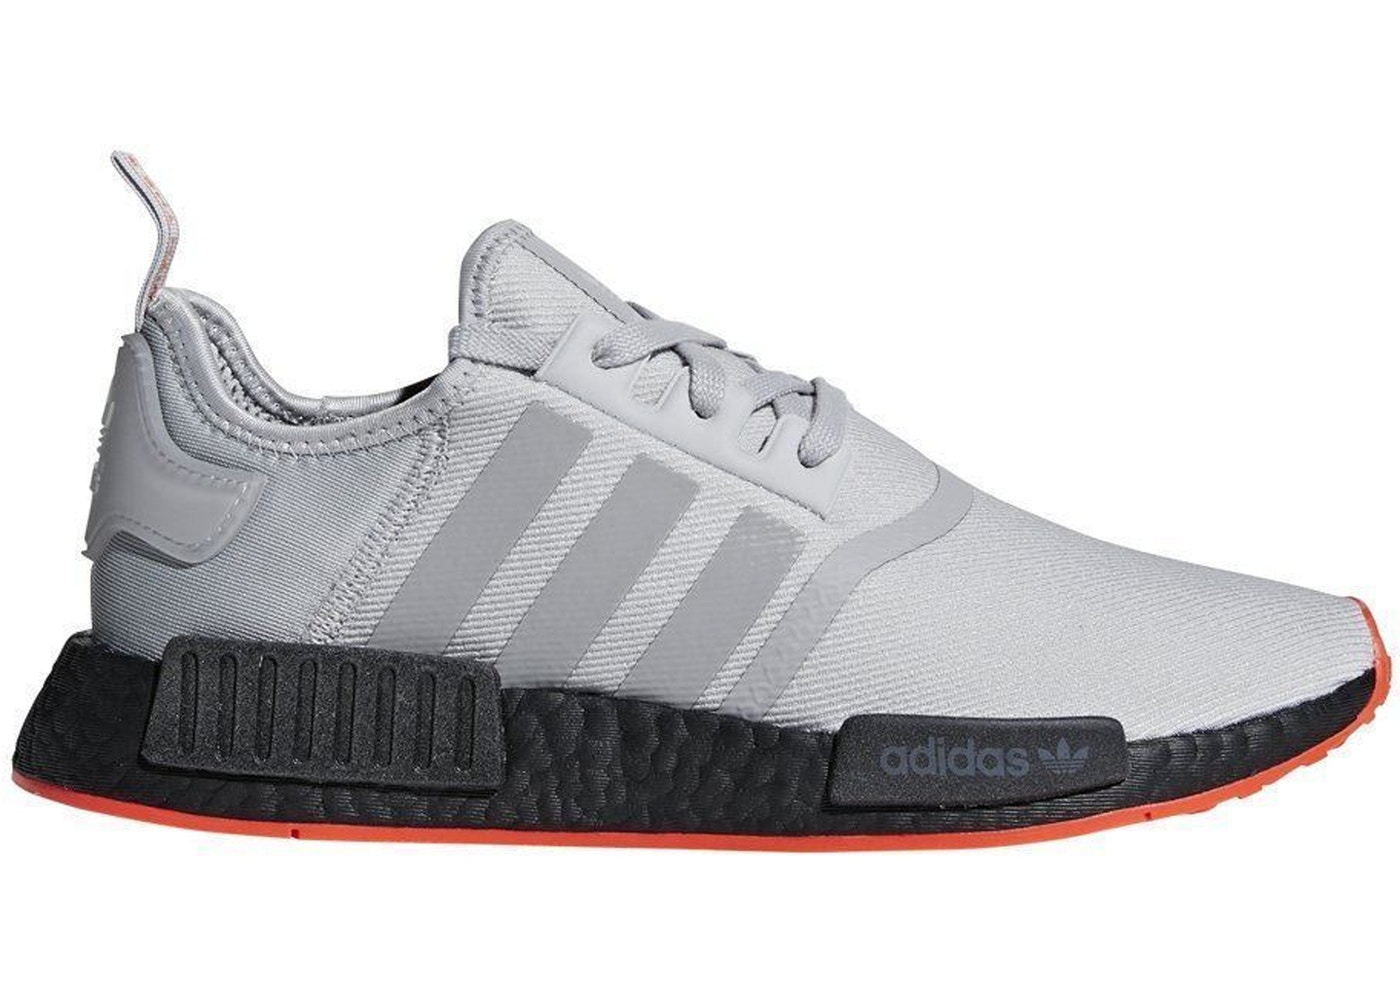 official photos 08d02 49433 adidas NMD R1 Grey Solar Red